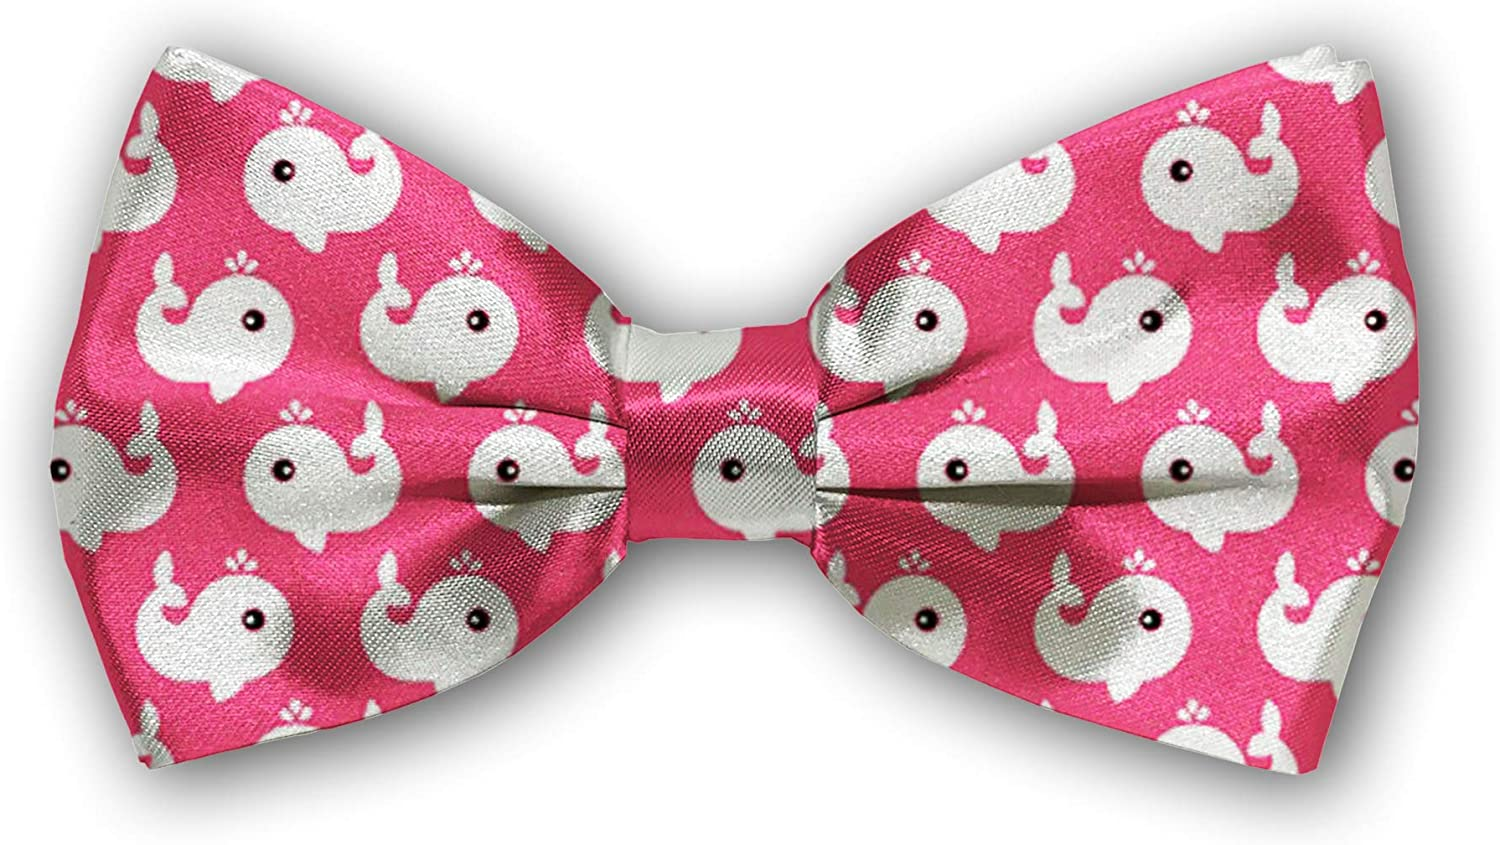 Bow Tie Tuxedo OFFicial store Butterfly Cotton Adjustable Ranking TOP16 Mens Boys for Bowtie